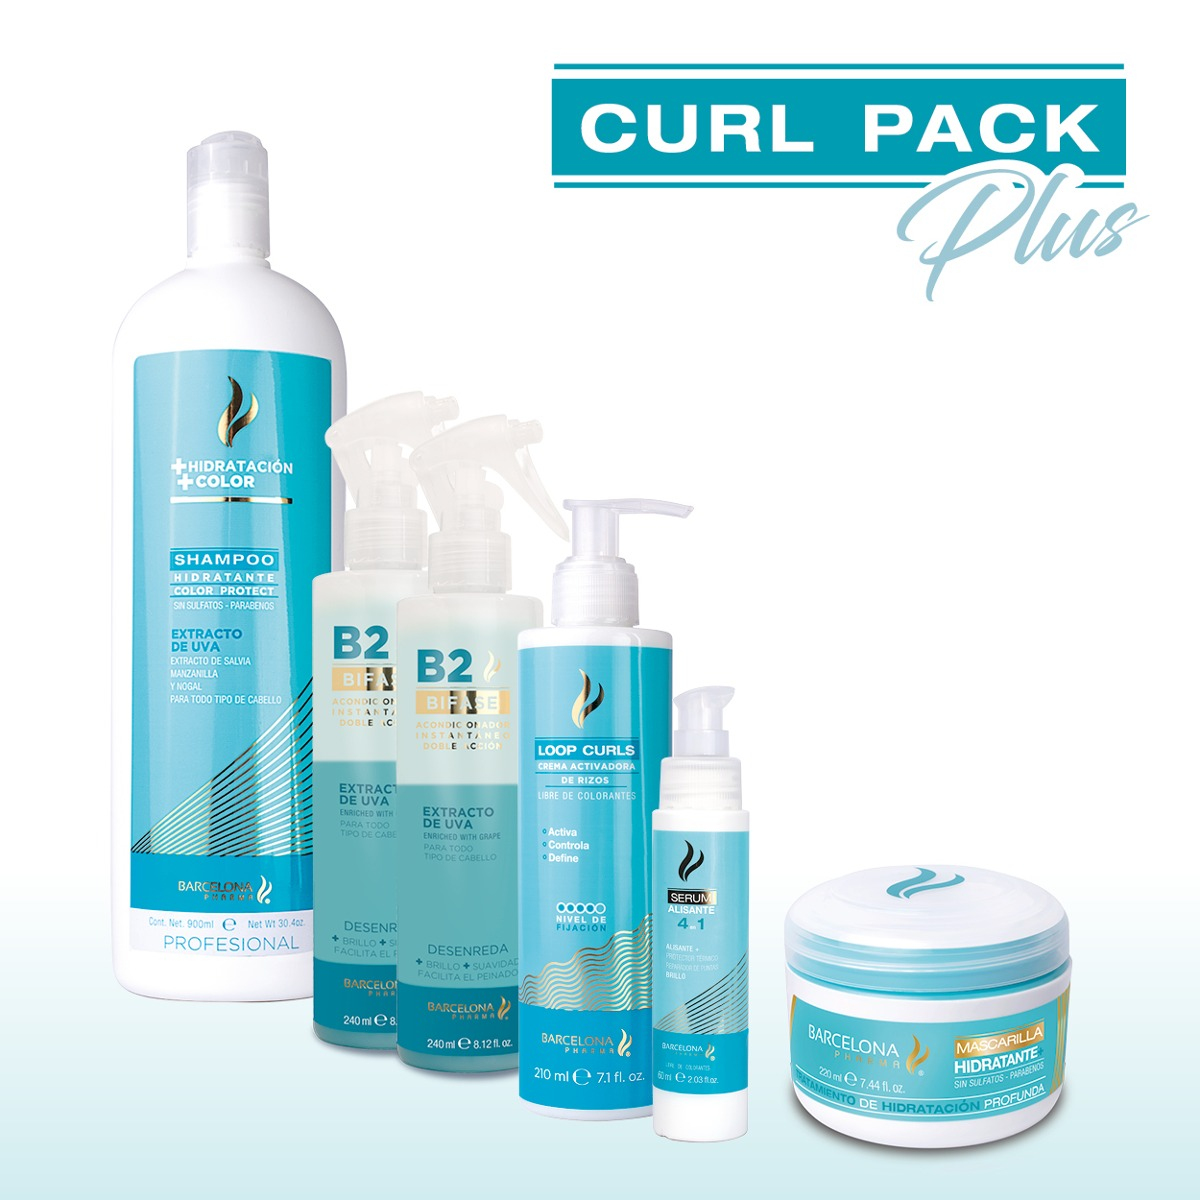 Curl Pack Plus